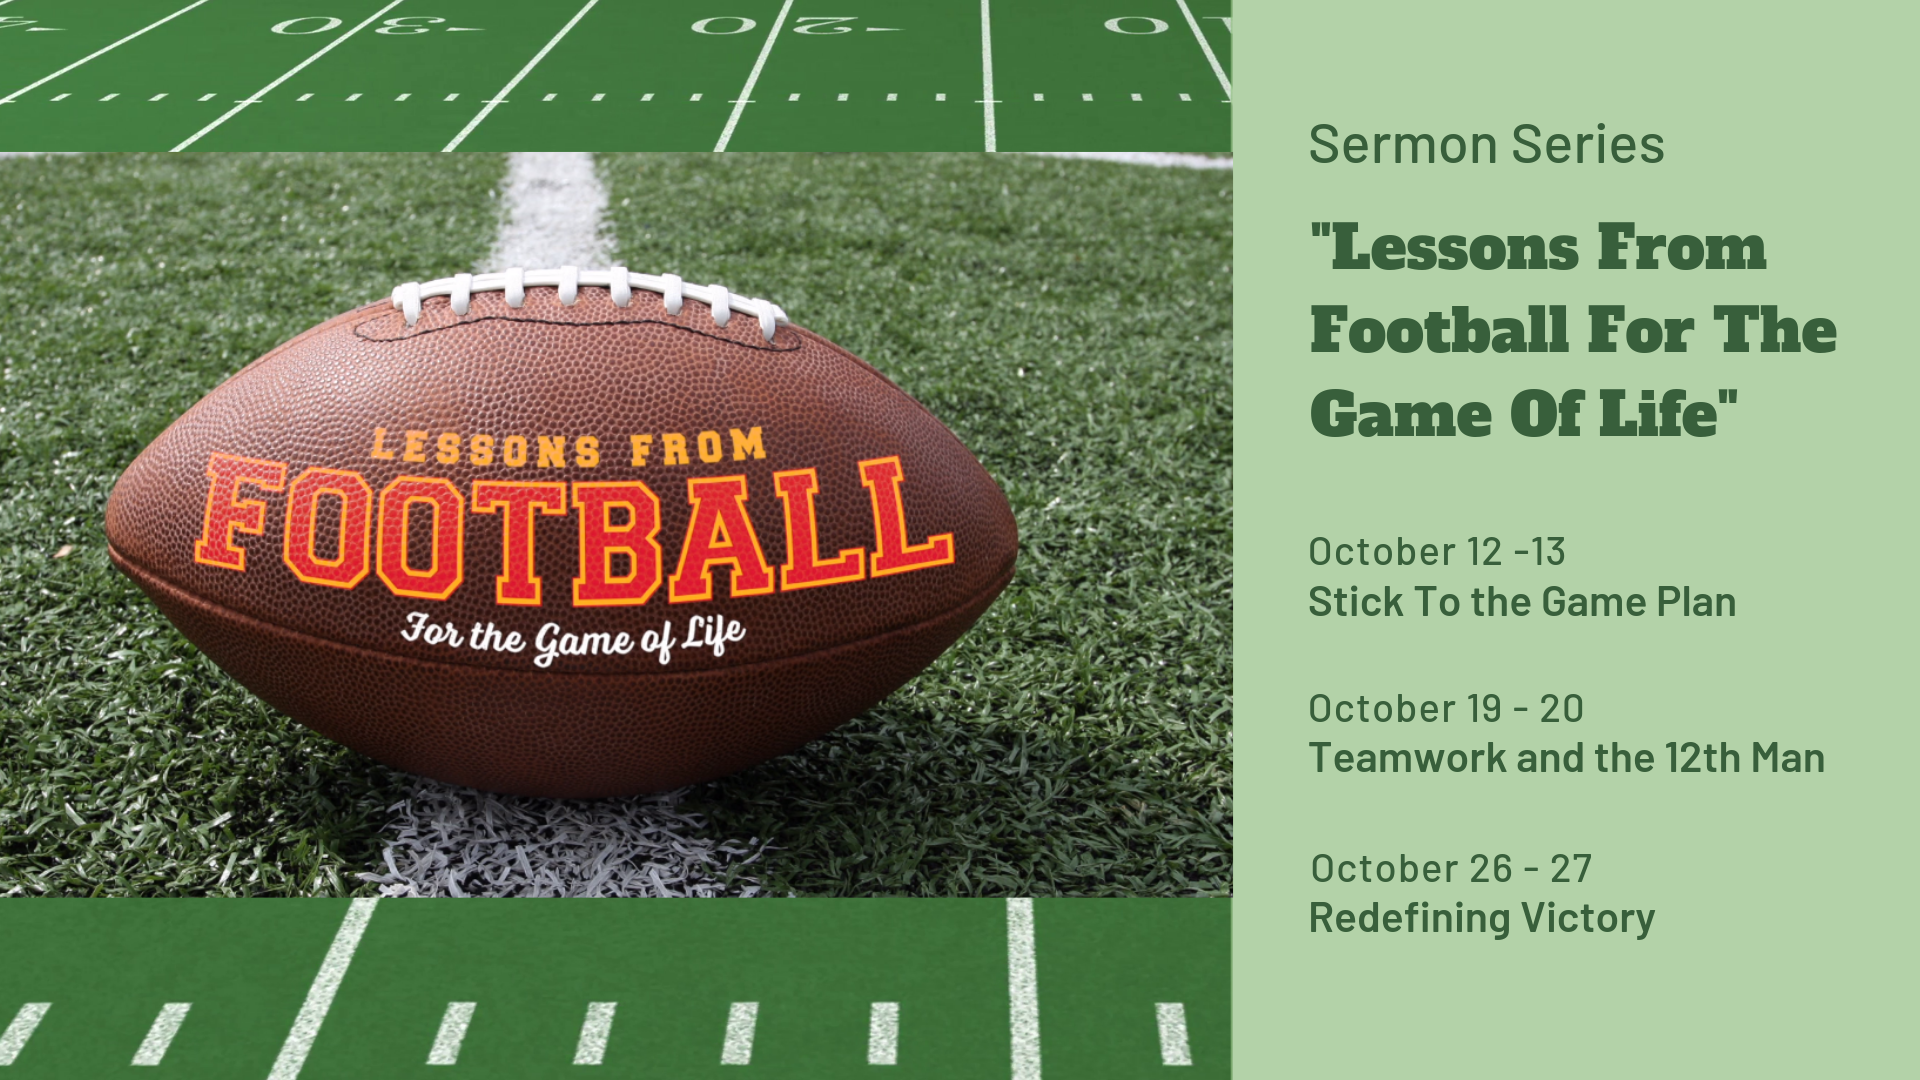 Lessons From Football for the Game of Life